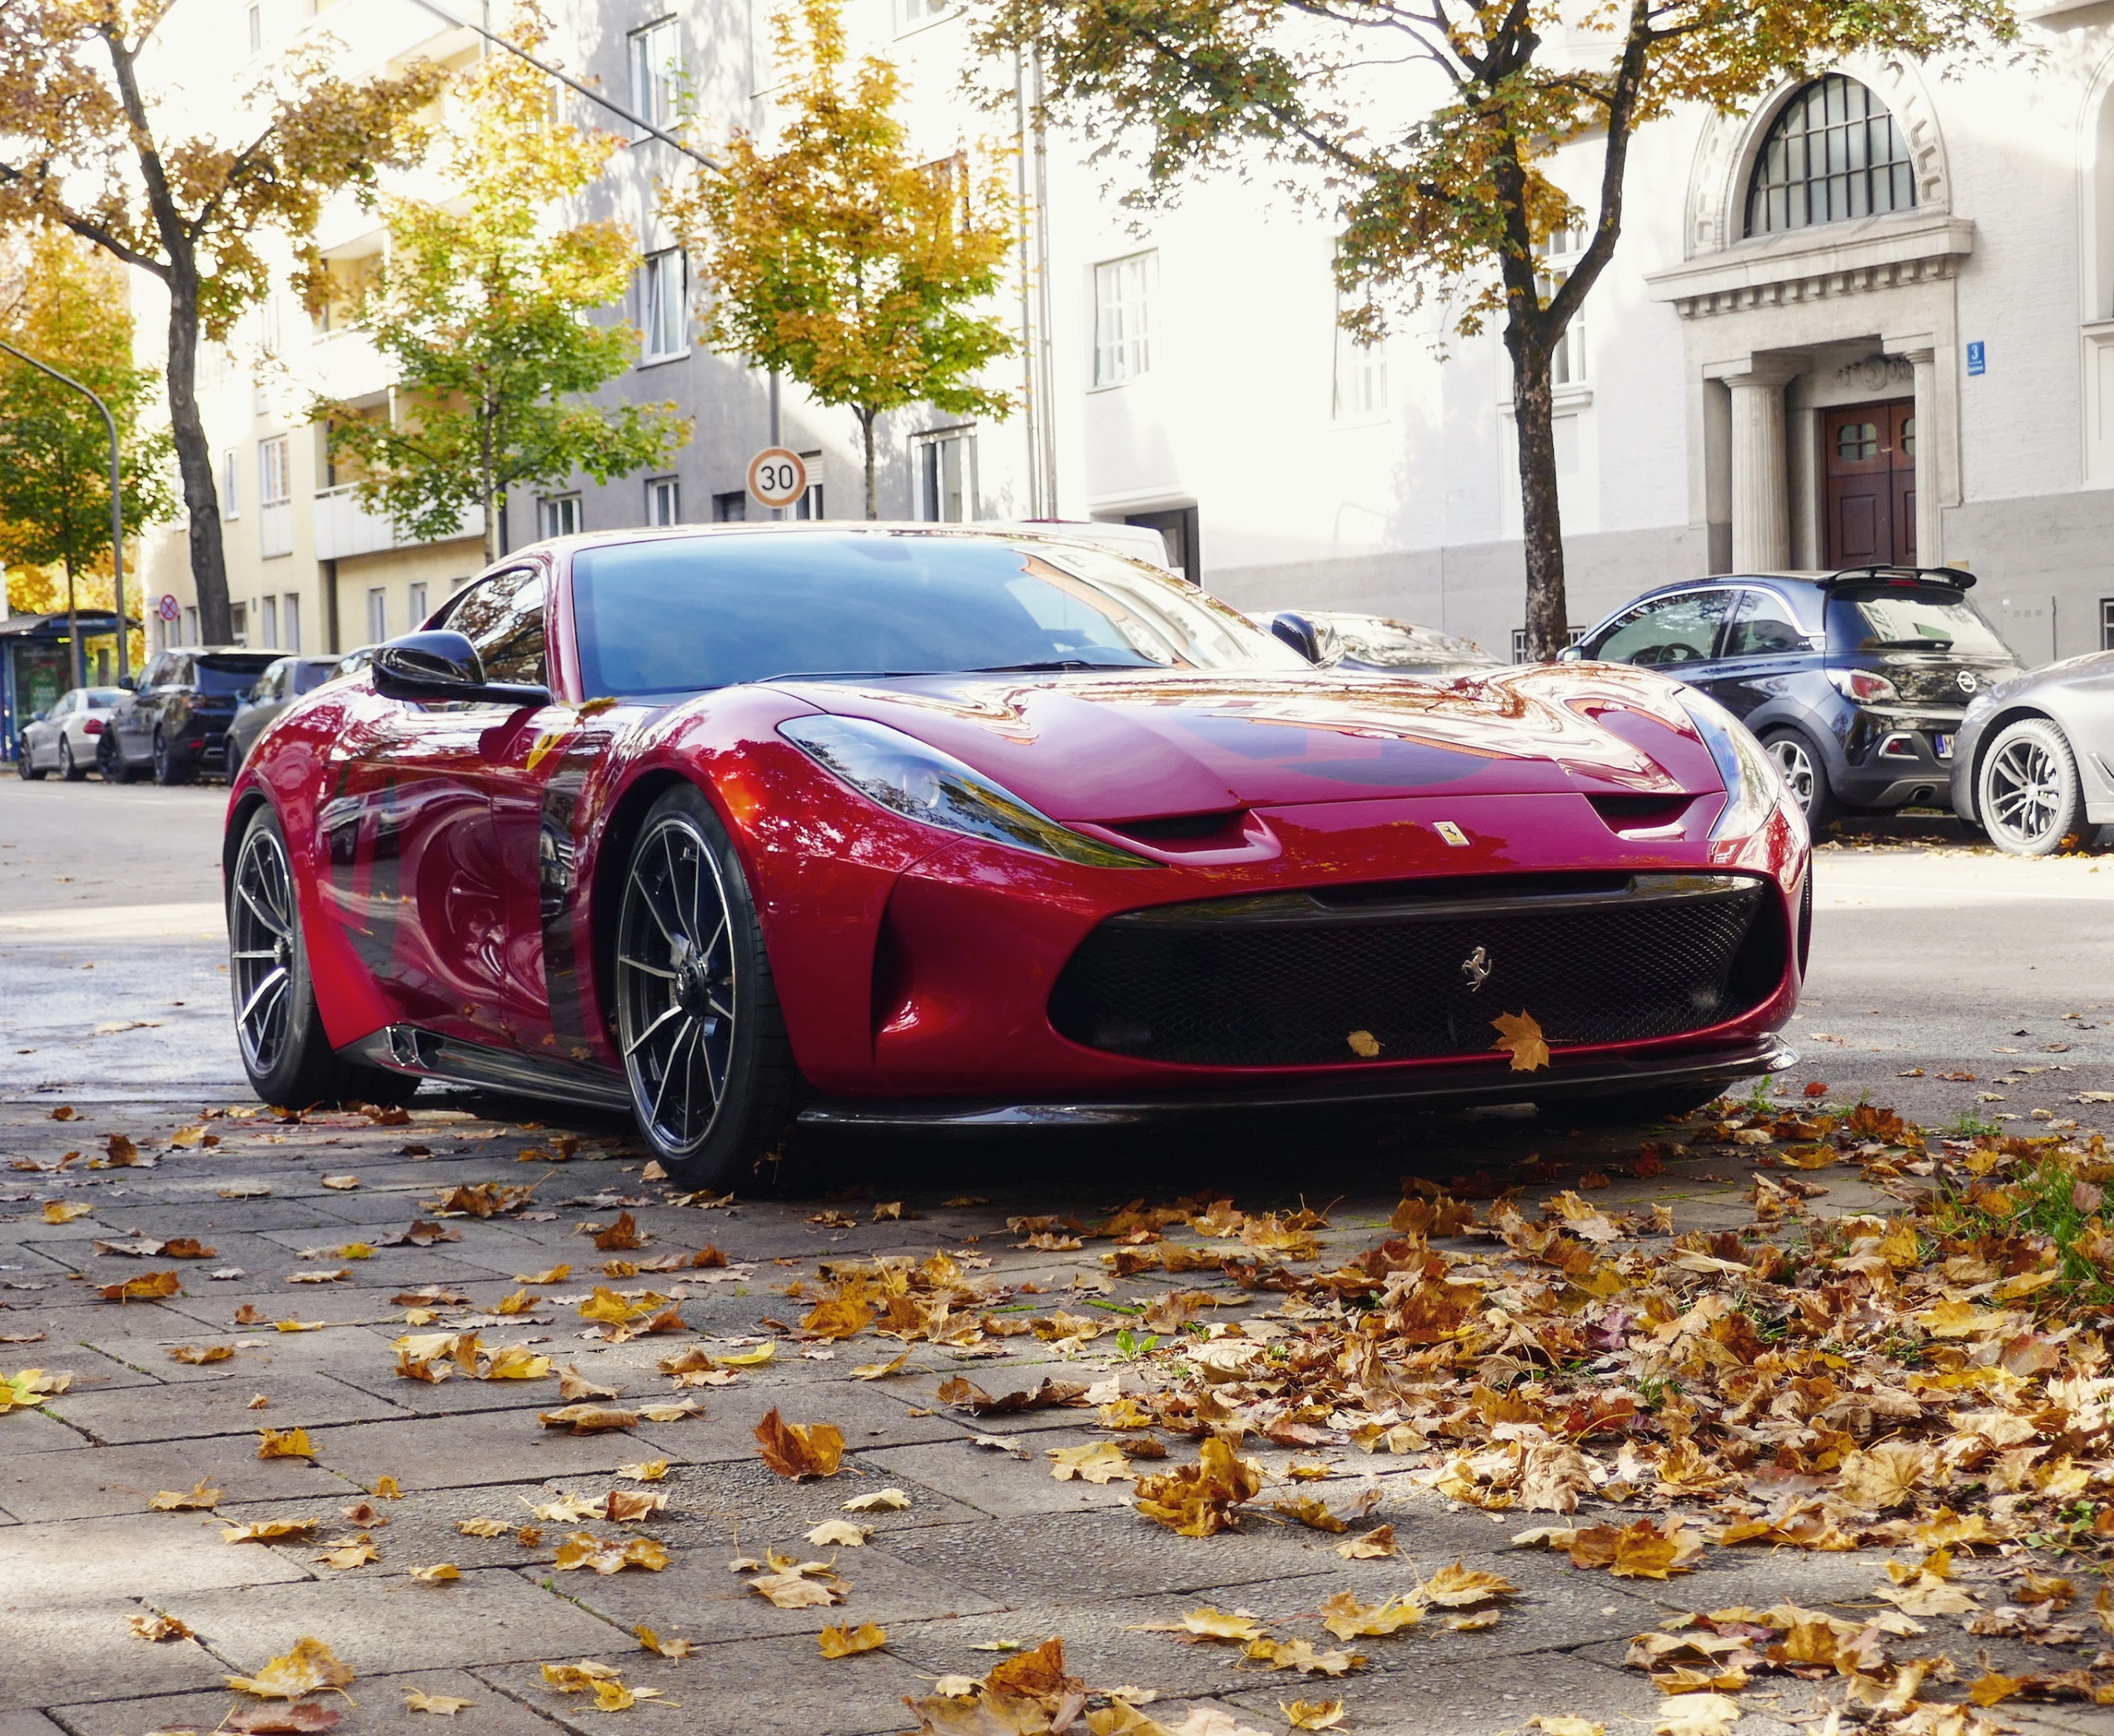 Ferrari only allowed us a brief glimpse of its unique Omologata supercar when it debuted a month ago, but this weekend, the exotic coupe unexpectedly popped up on a street in Munich, Germany.